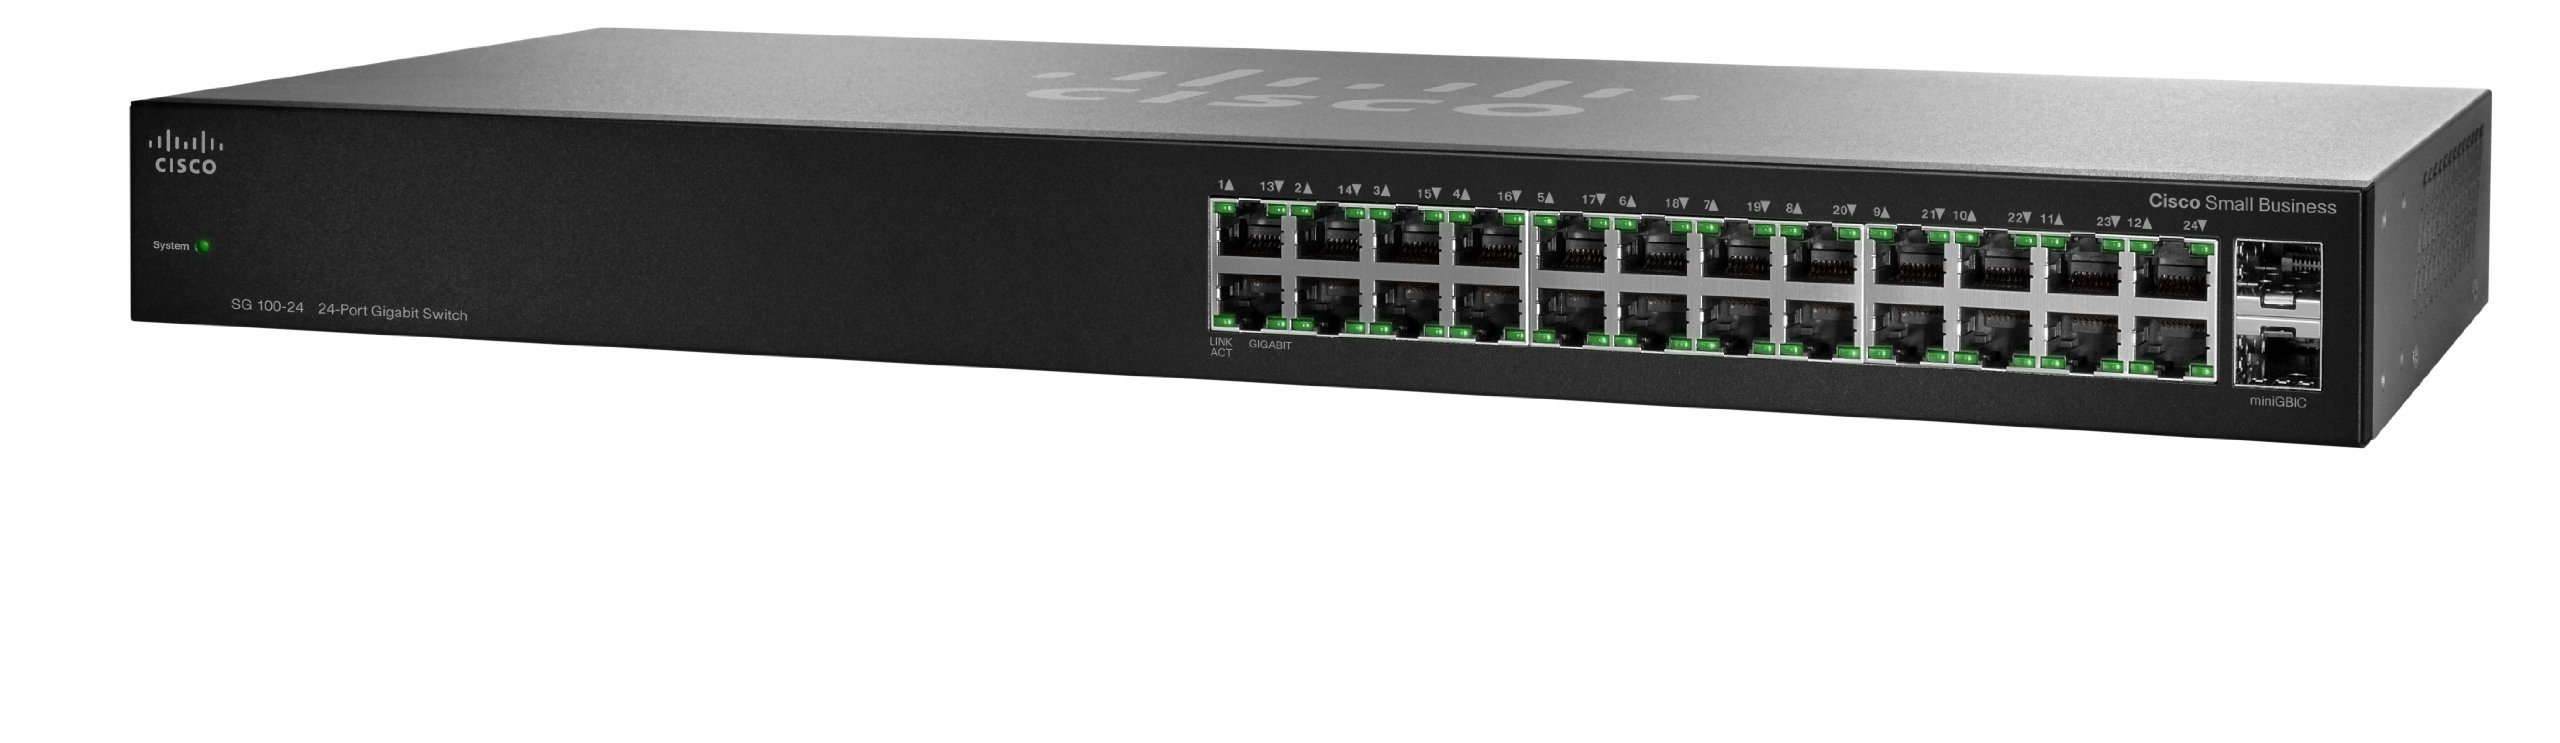 Cisco SG10024 24 port Gigabit Switch